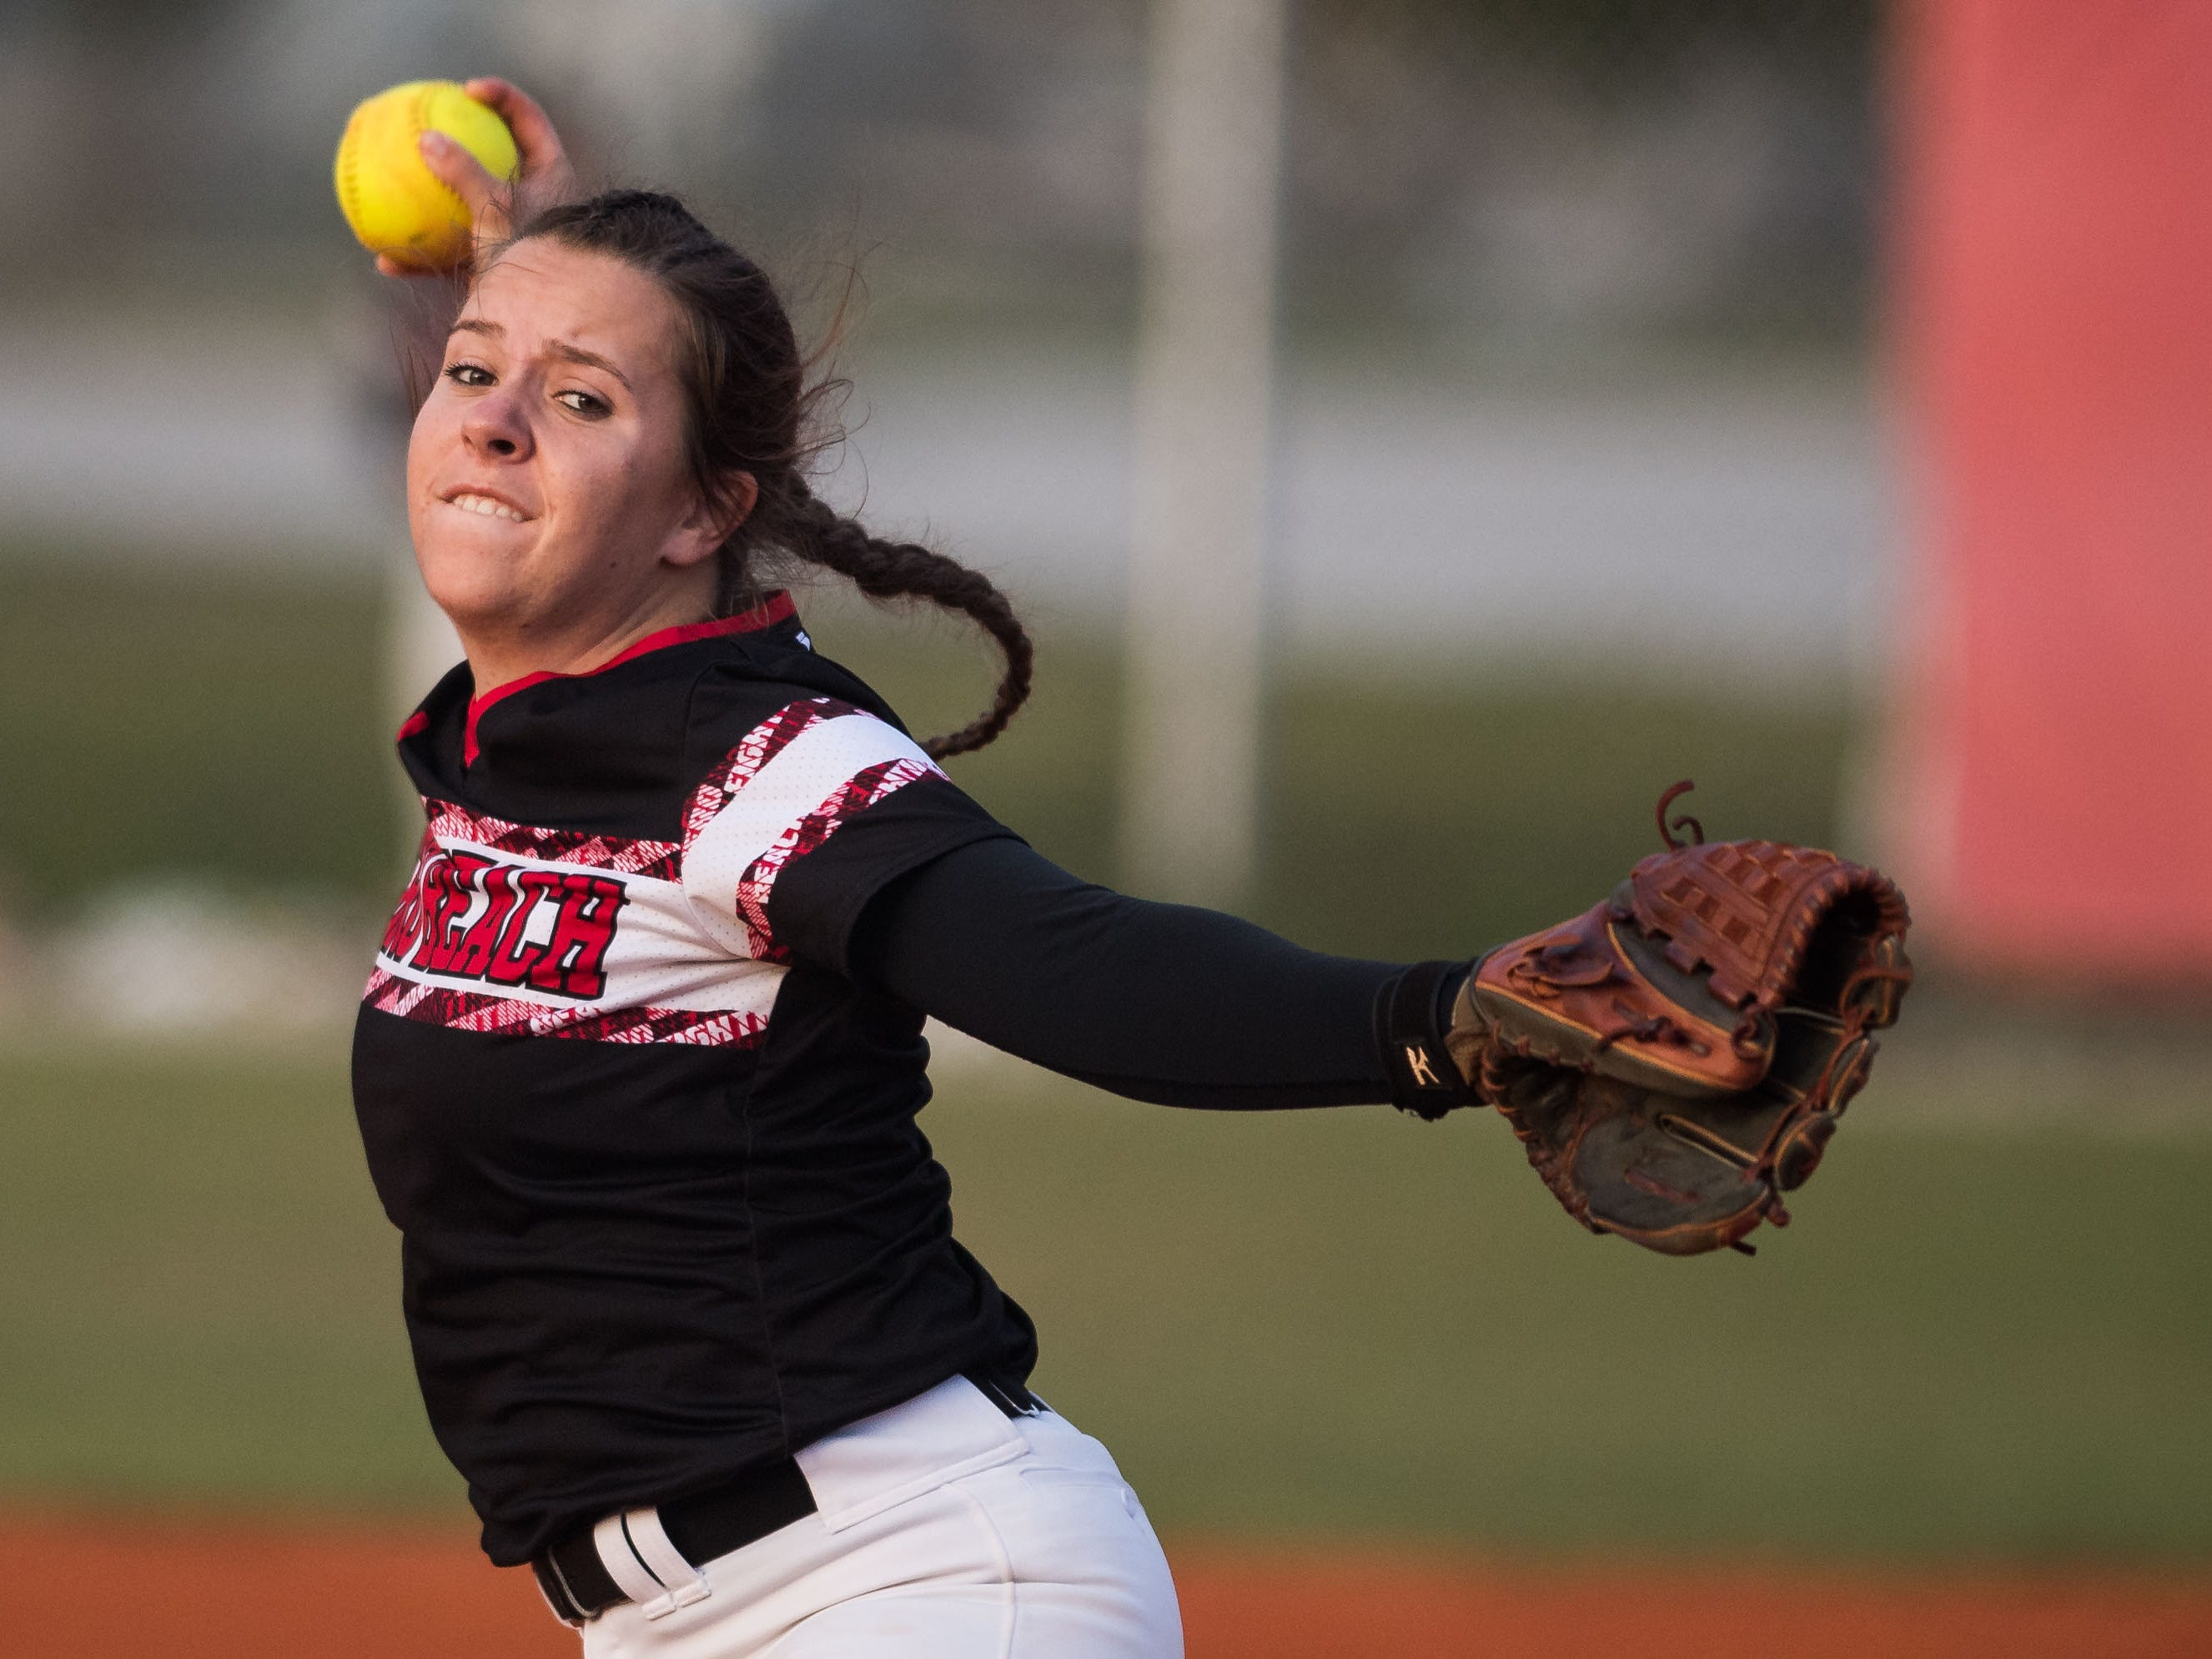 Vero Beach pitcher Shayne Hewitt throws against Treasure Coast's Brooklyn Lyons in the top of the second inning of the high school softball game Friday, March 29, 2019, at Vero Beach High School.